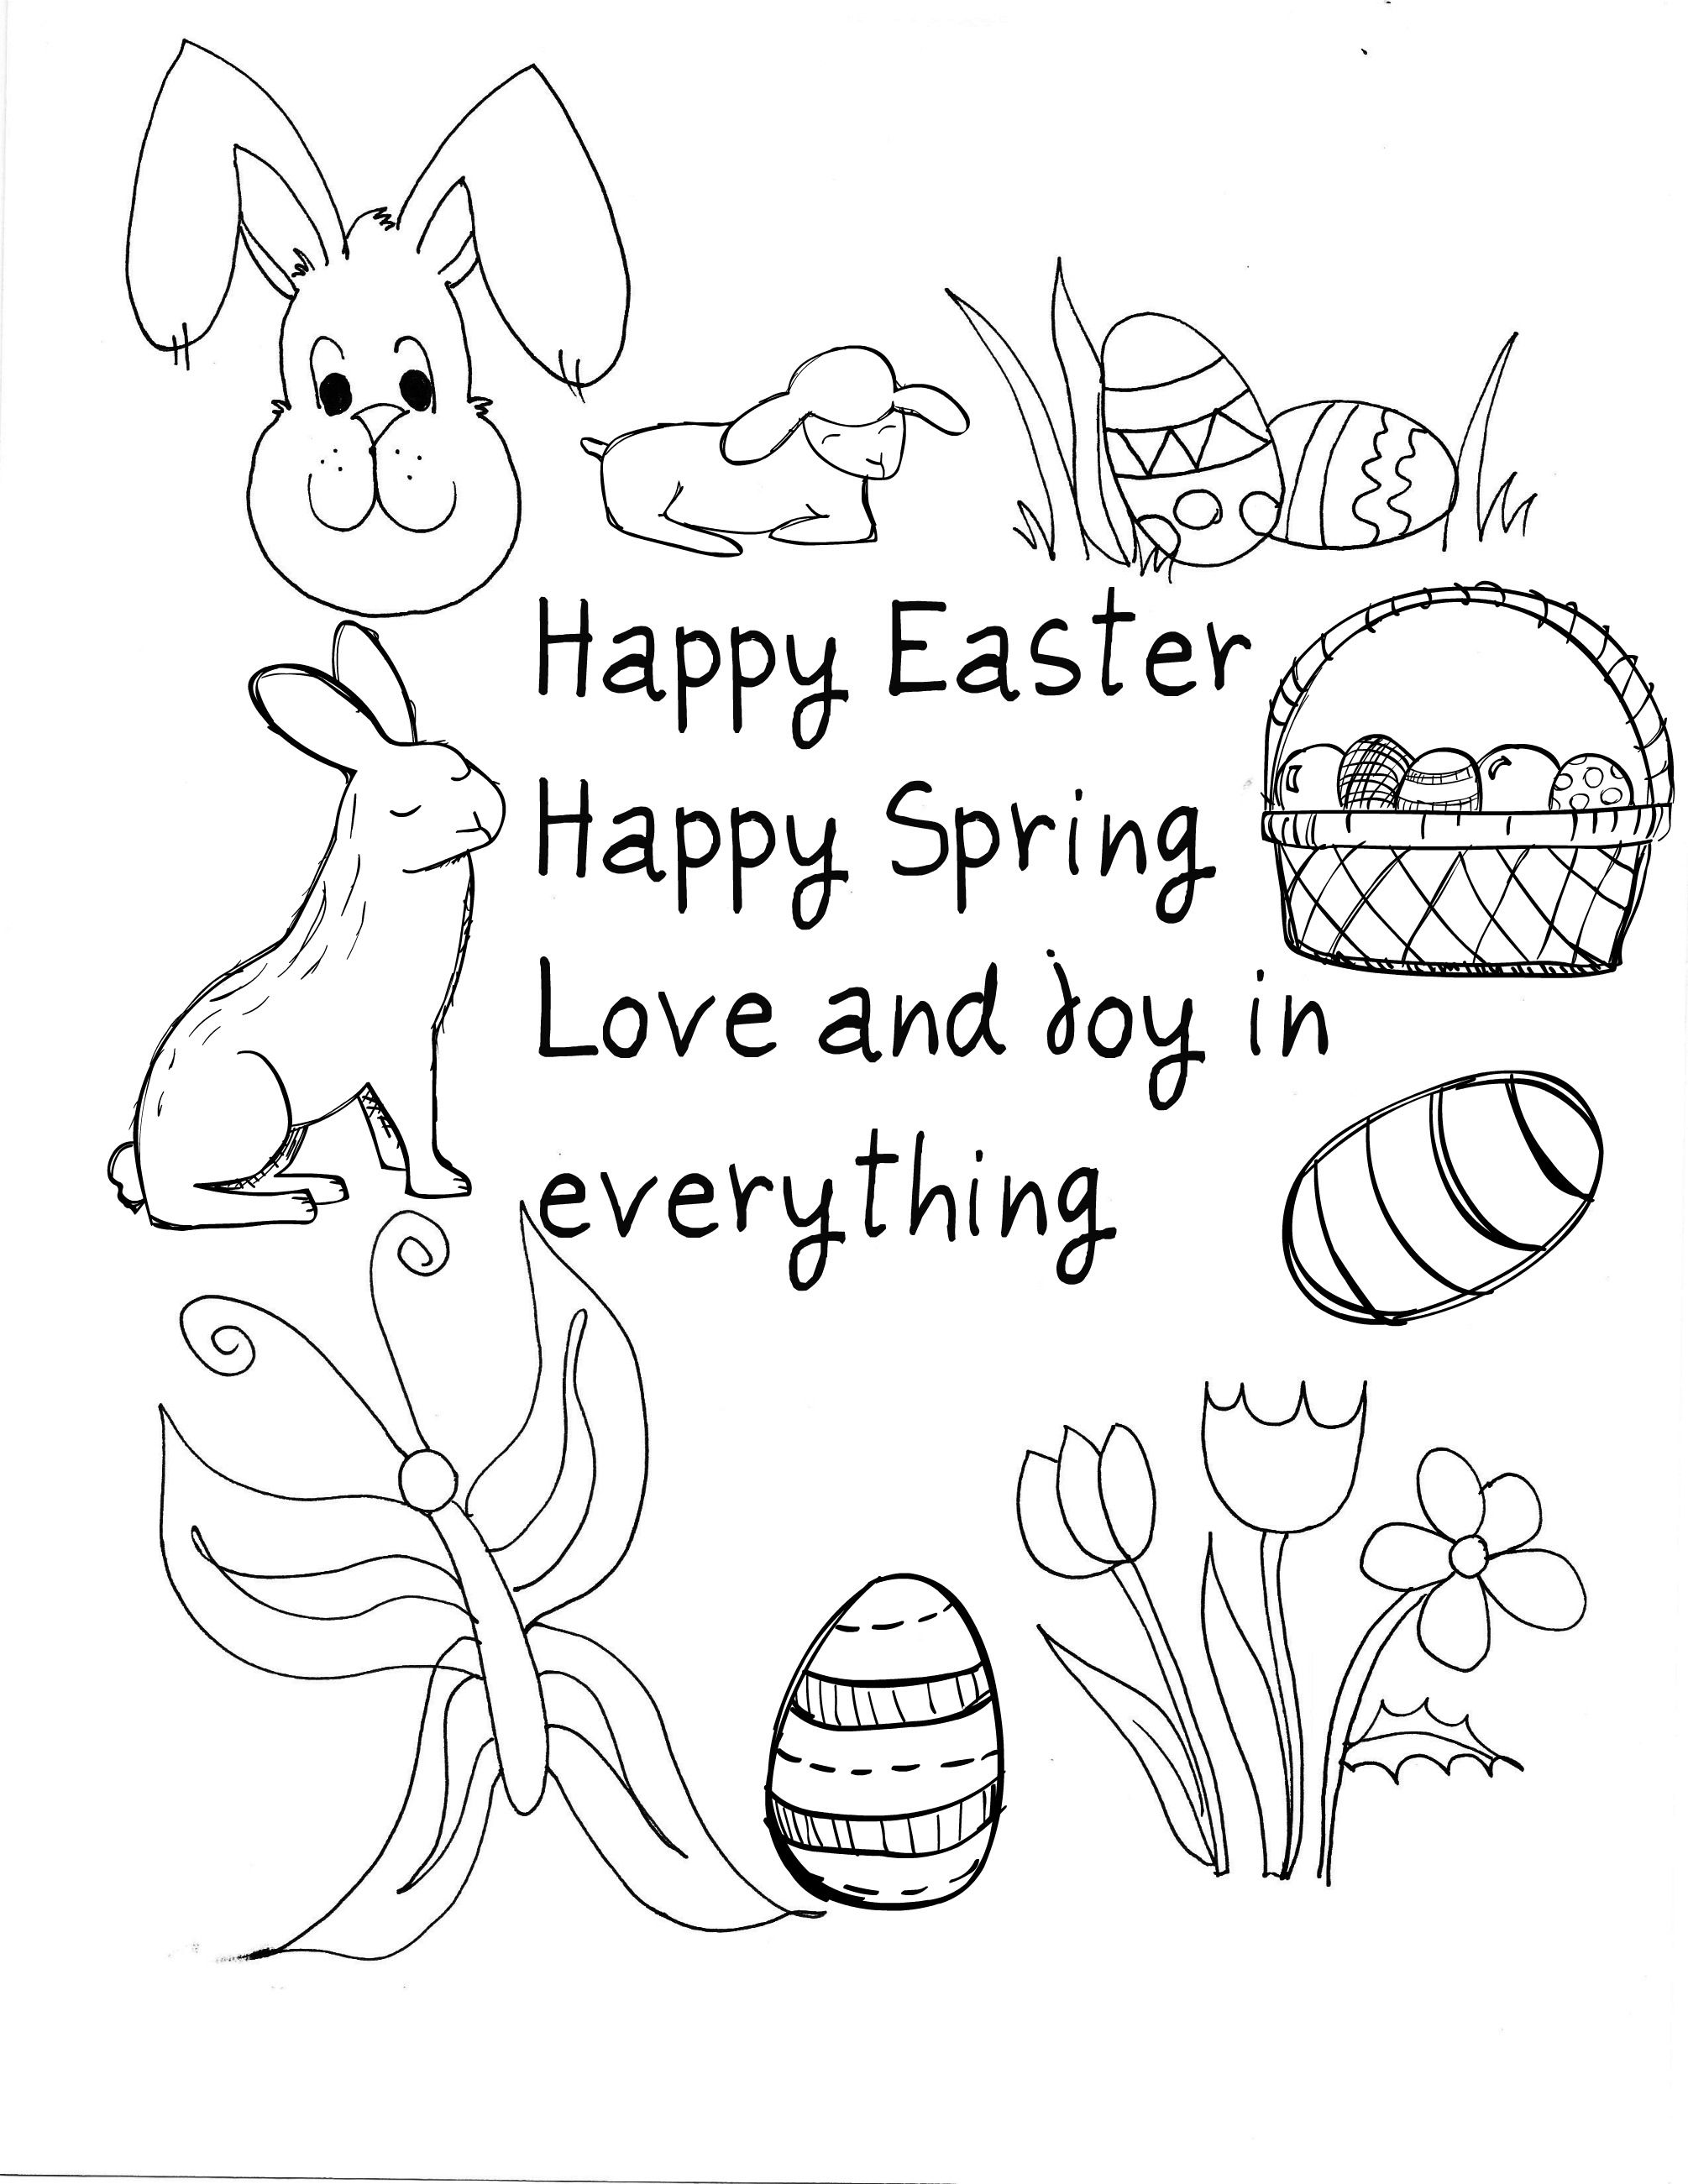 10 Easter Printable Cards To Color I Just Clicked On The Image Then Copy Spring Coloring PagesEaster